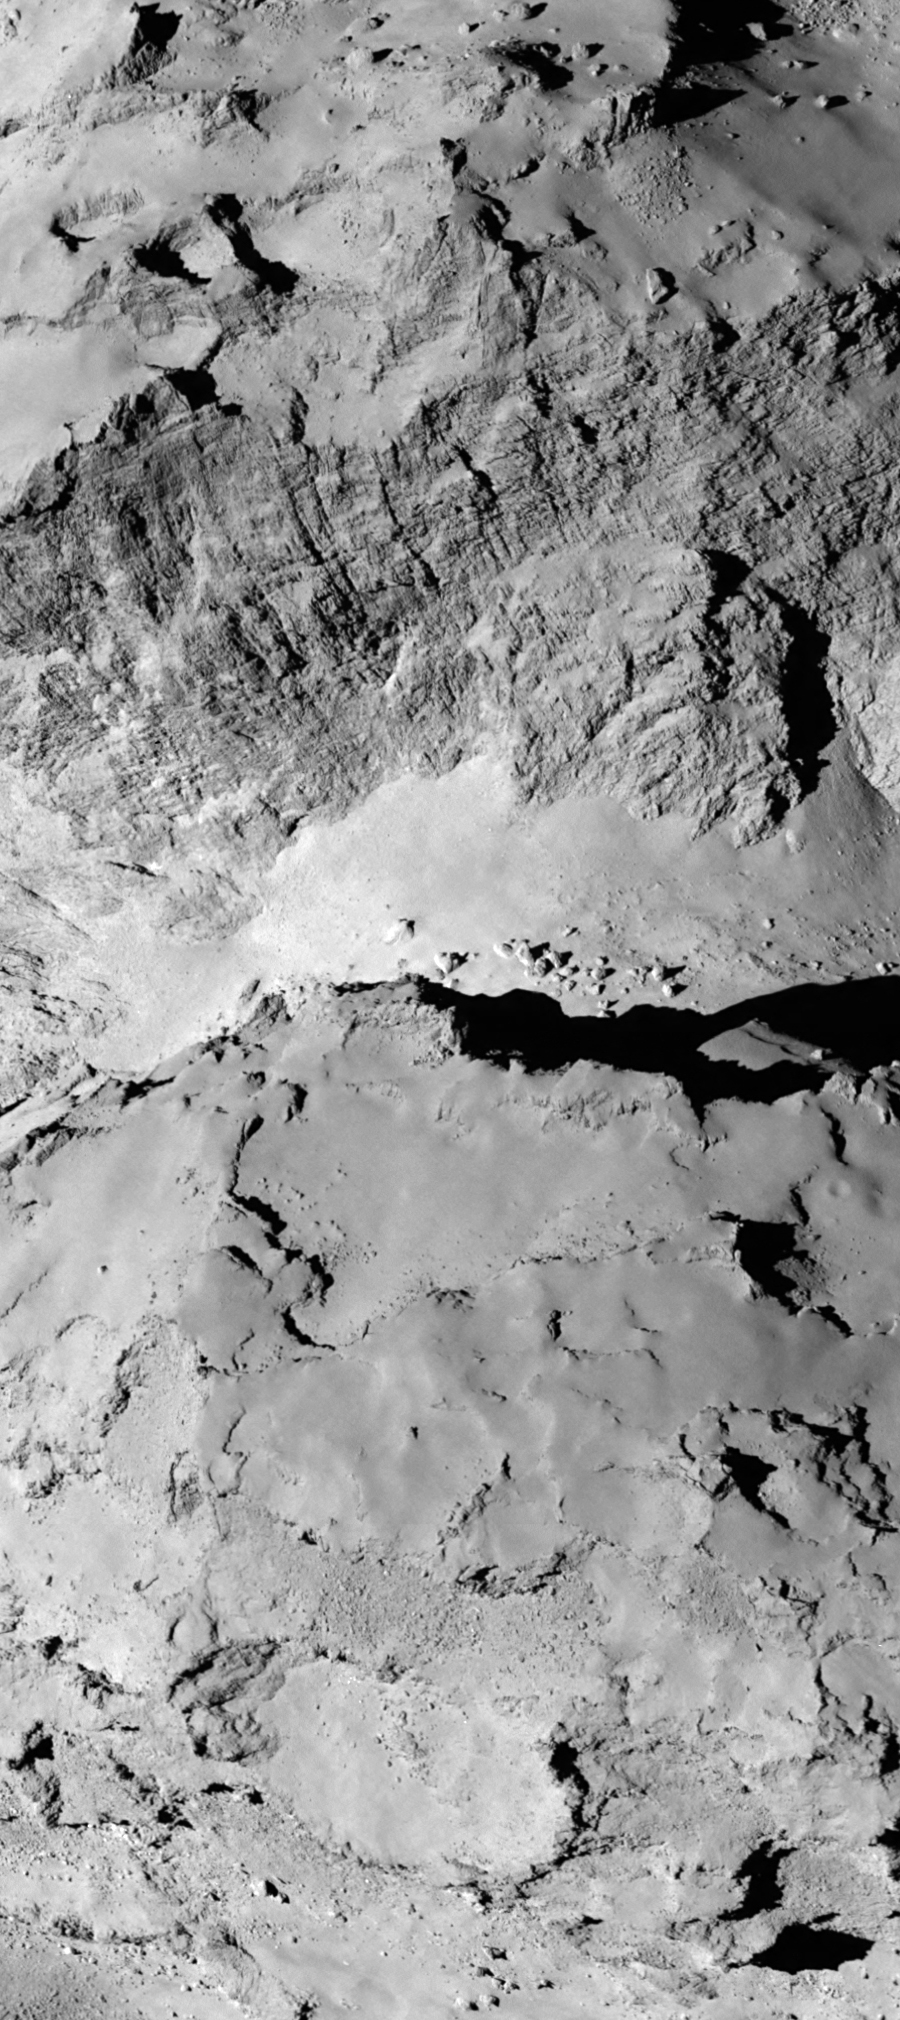 comet-under-loupe (1)